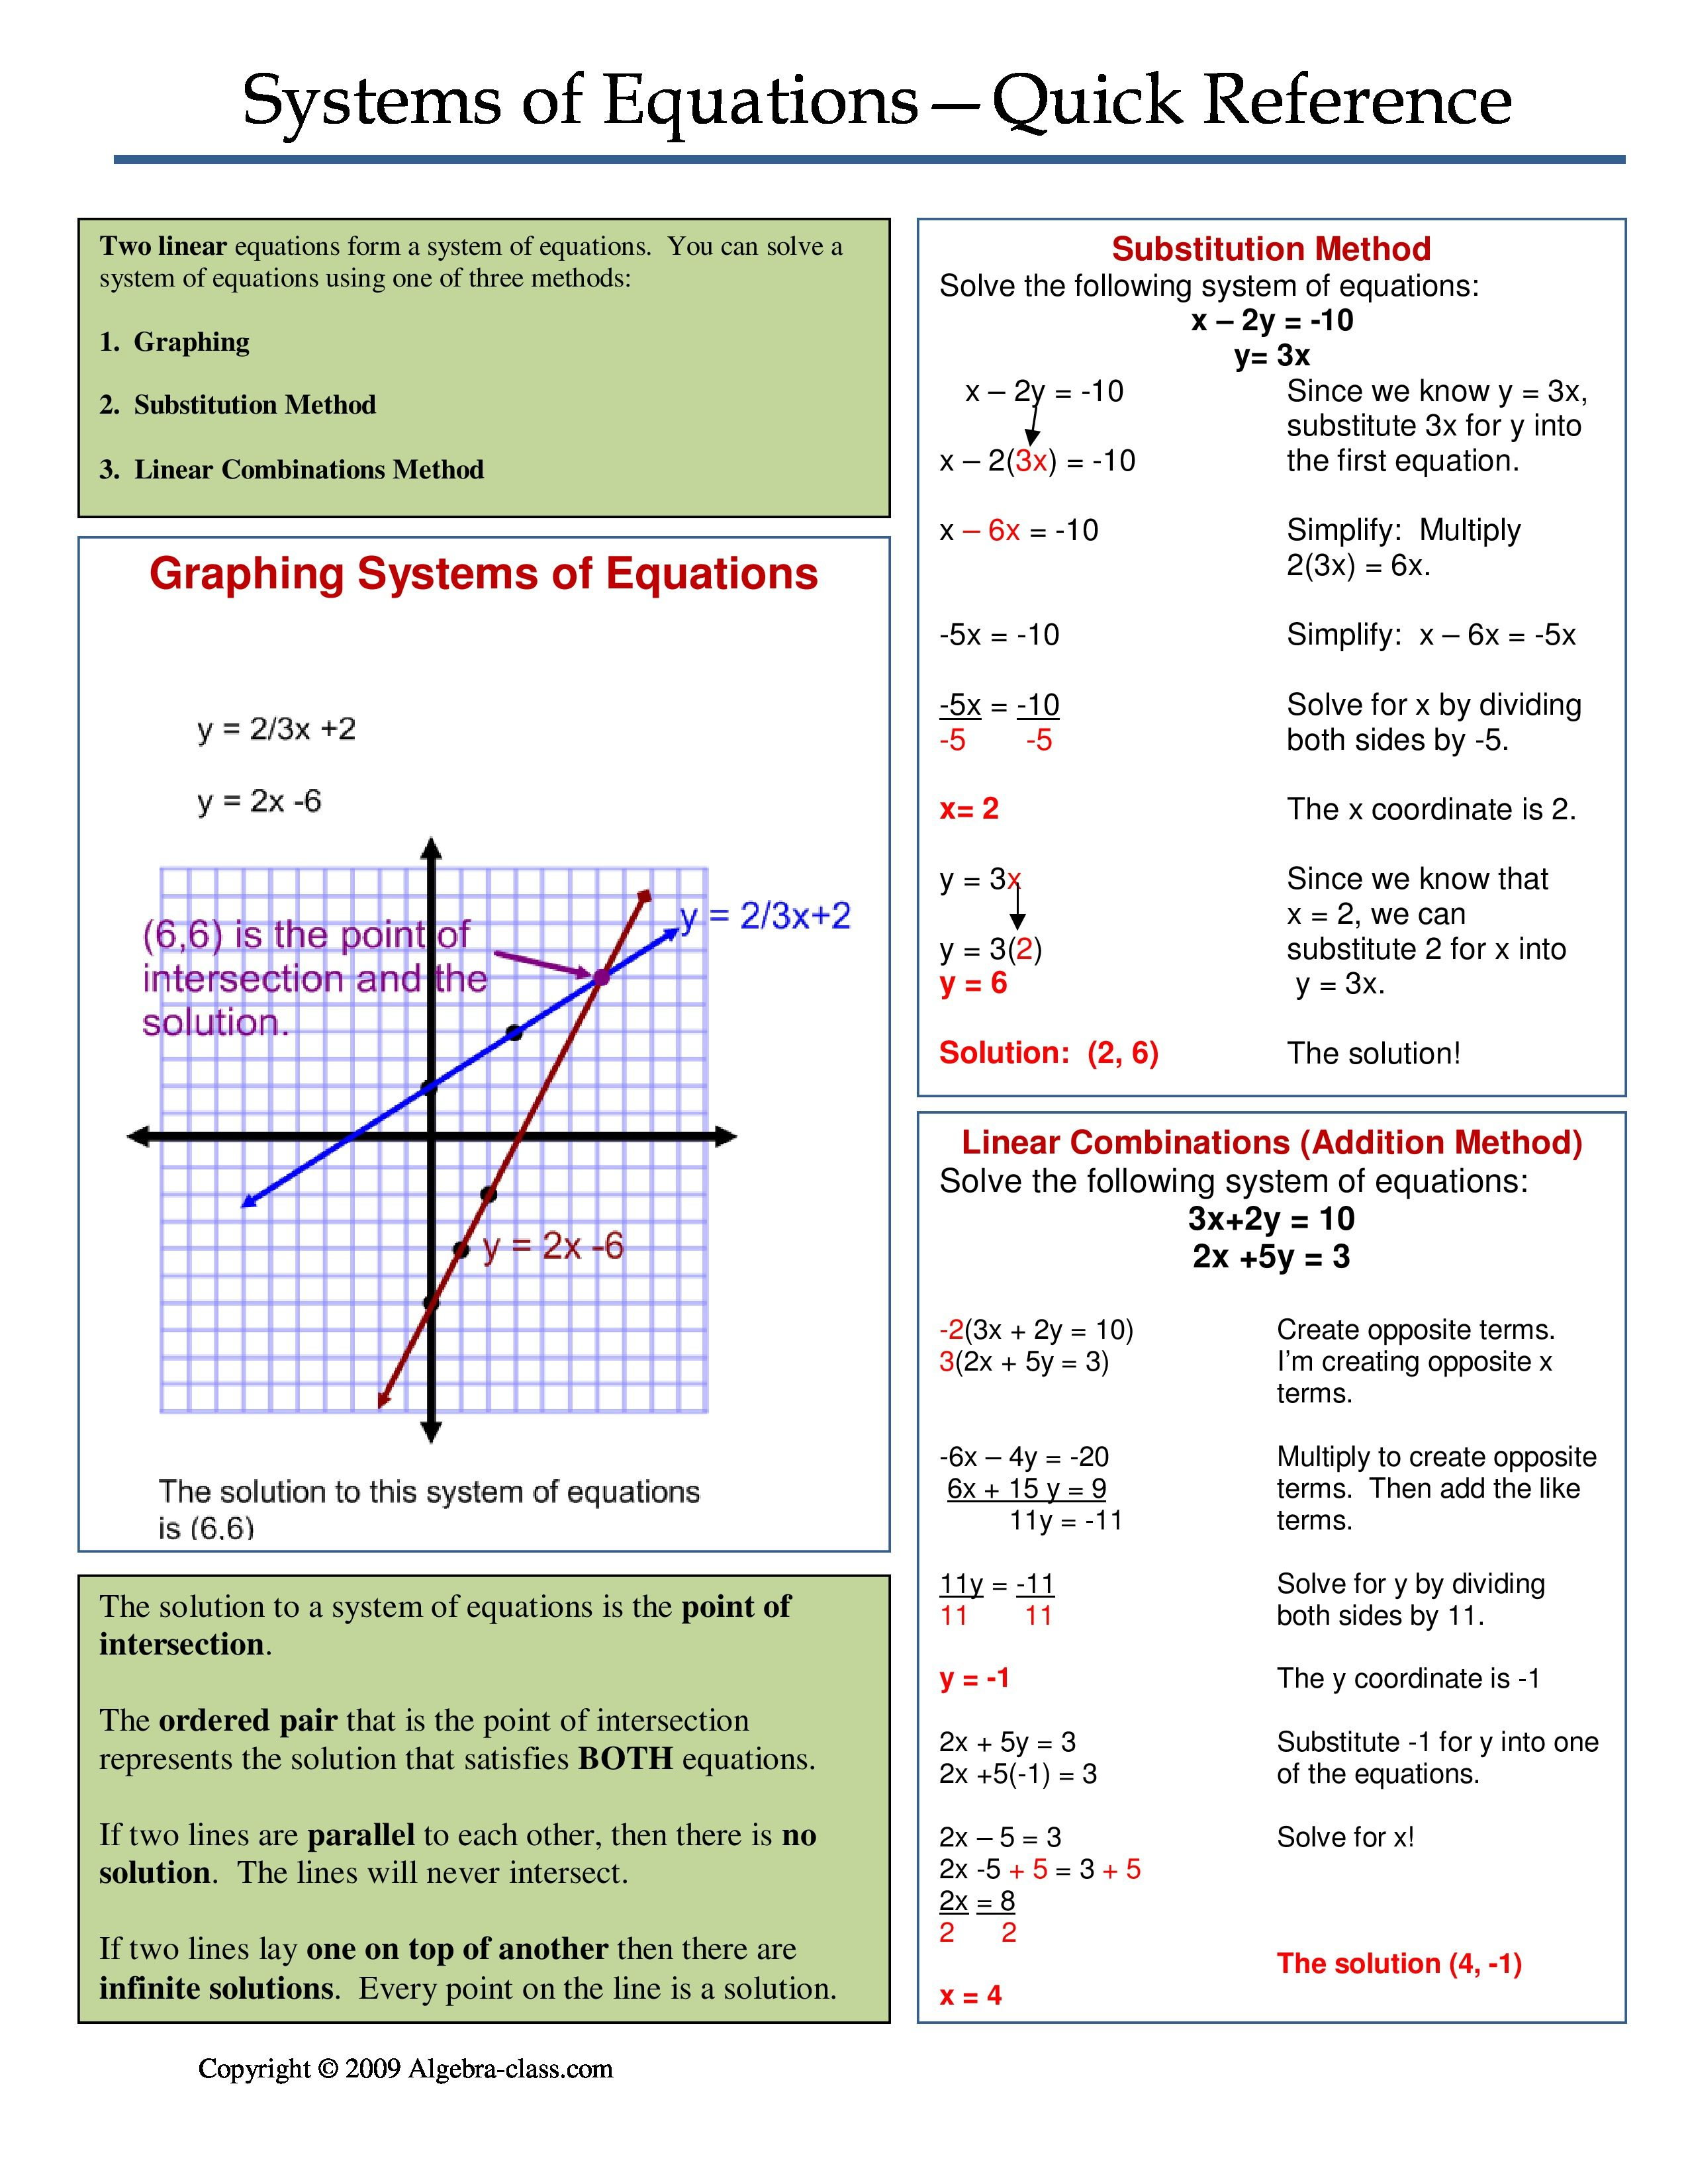 One page notes worksheet for Systems of Equations Unit.   Systems of  equations [ 3300 x 2550 Pixel ]